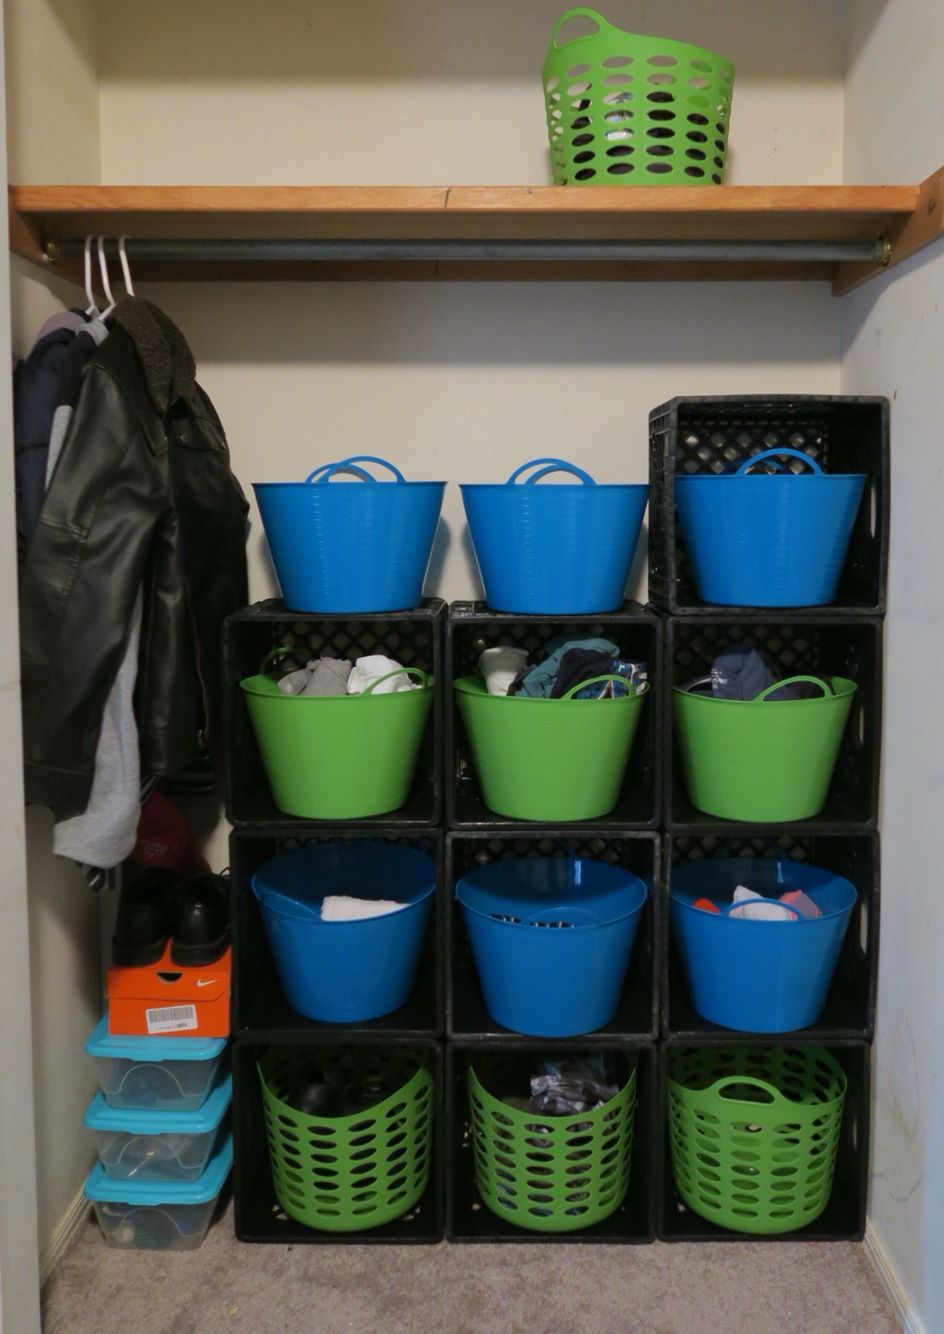 My Partially Completed Plastic Milk Crate Project For My Sons Room